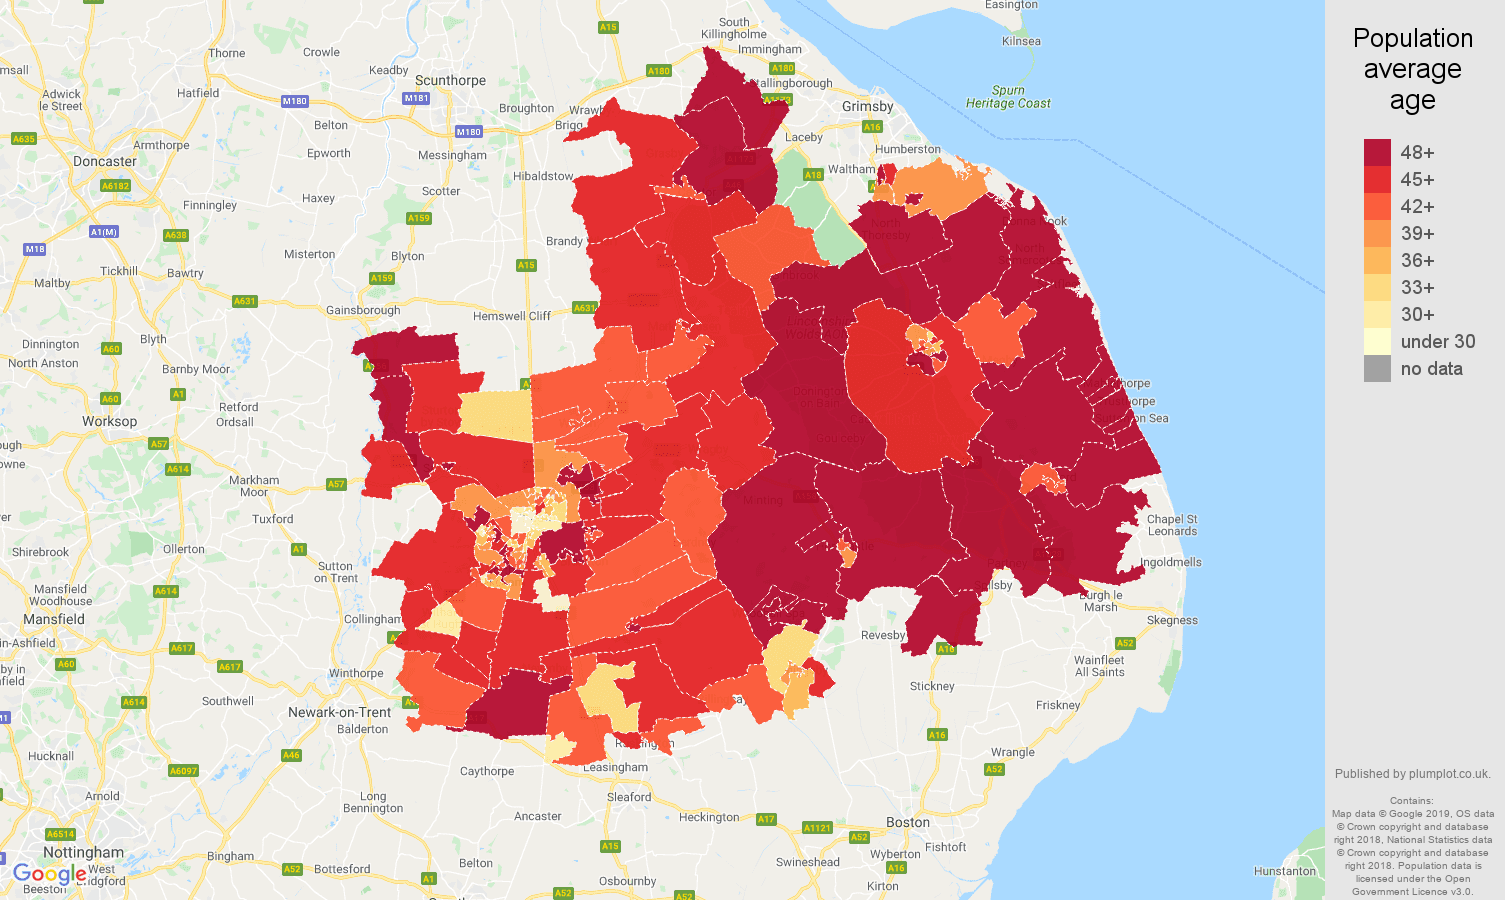 Lincoln population average age map